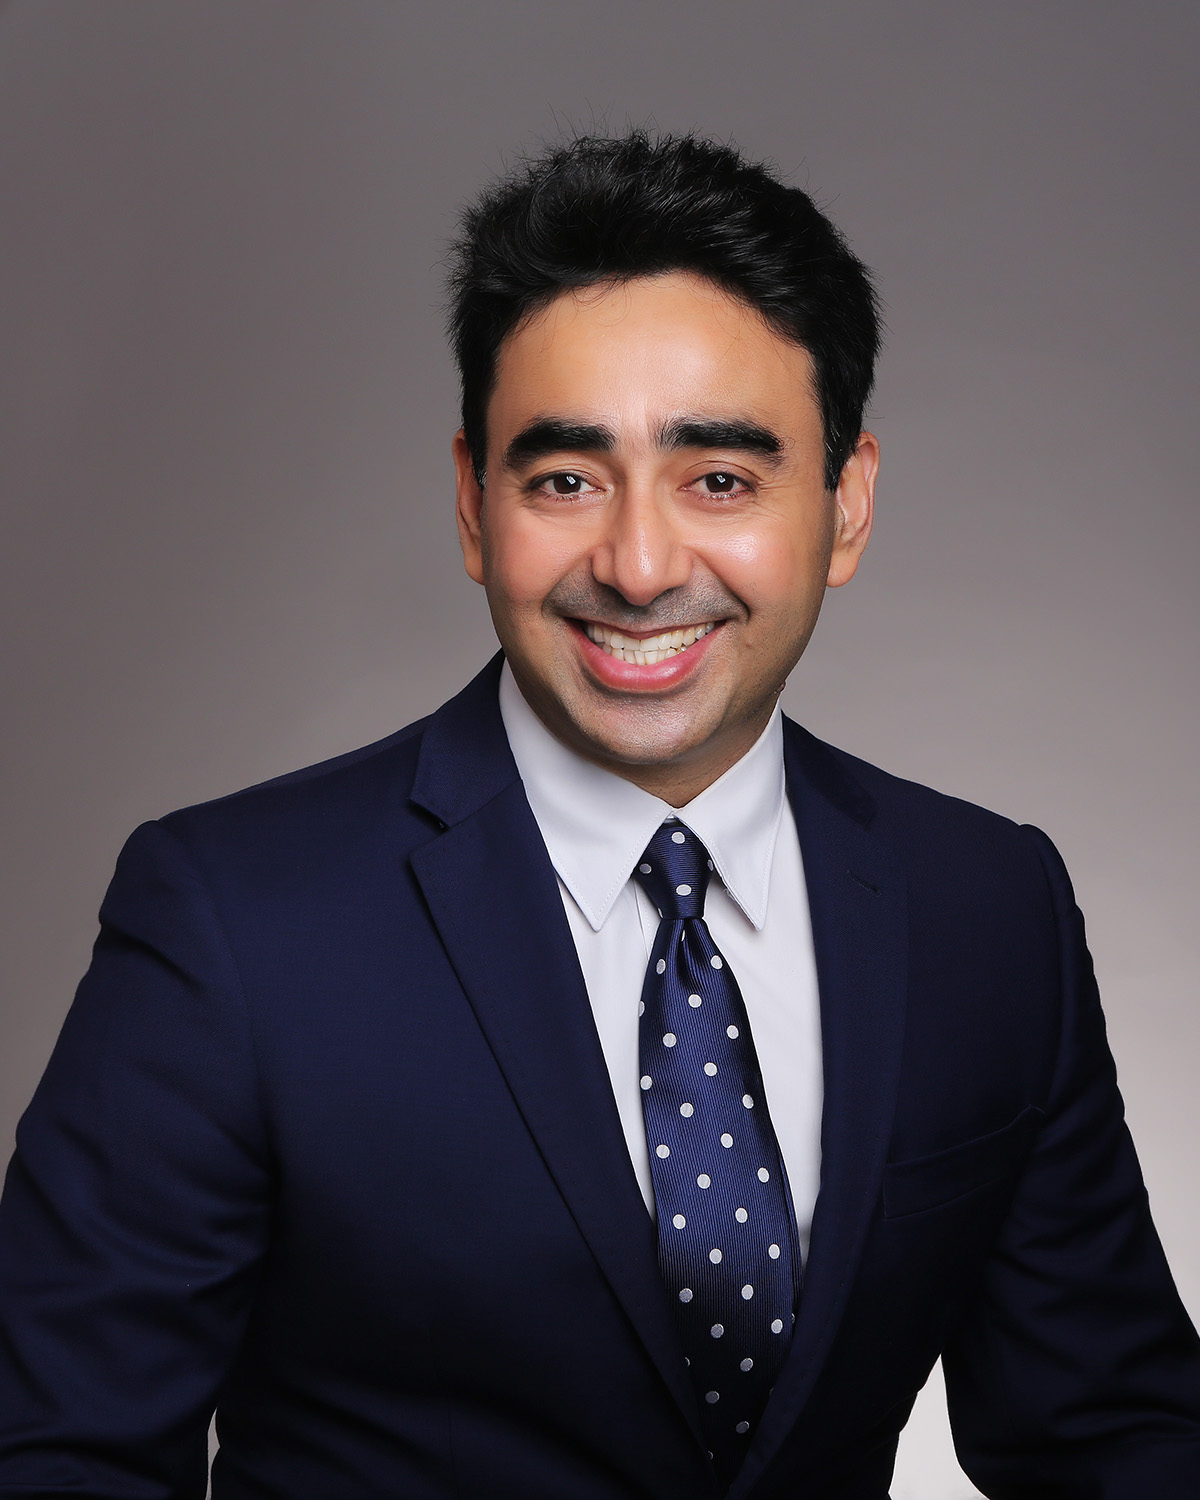 Himanshu Verma, Founder and CEO of Connected to India. Photo: Connected to India